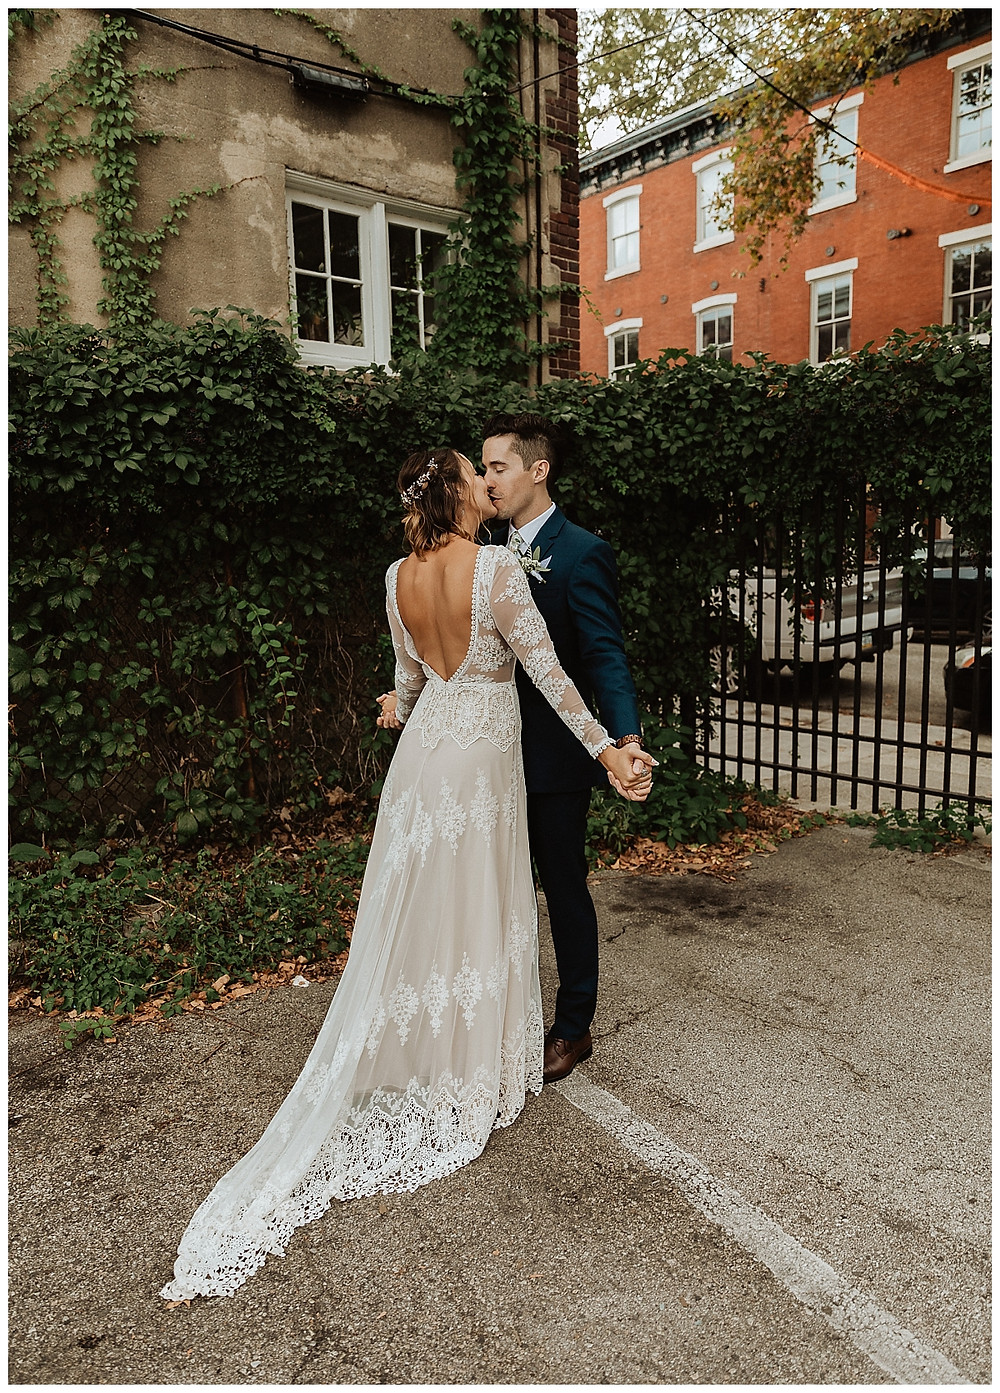 Bride & Groom Portraits, Bride in Dreamers and Lovers Dress